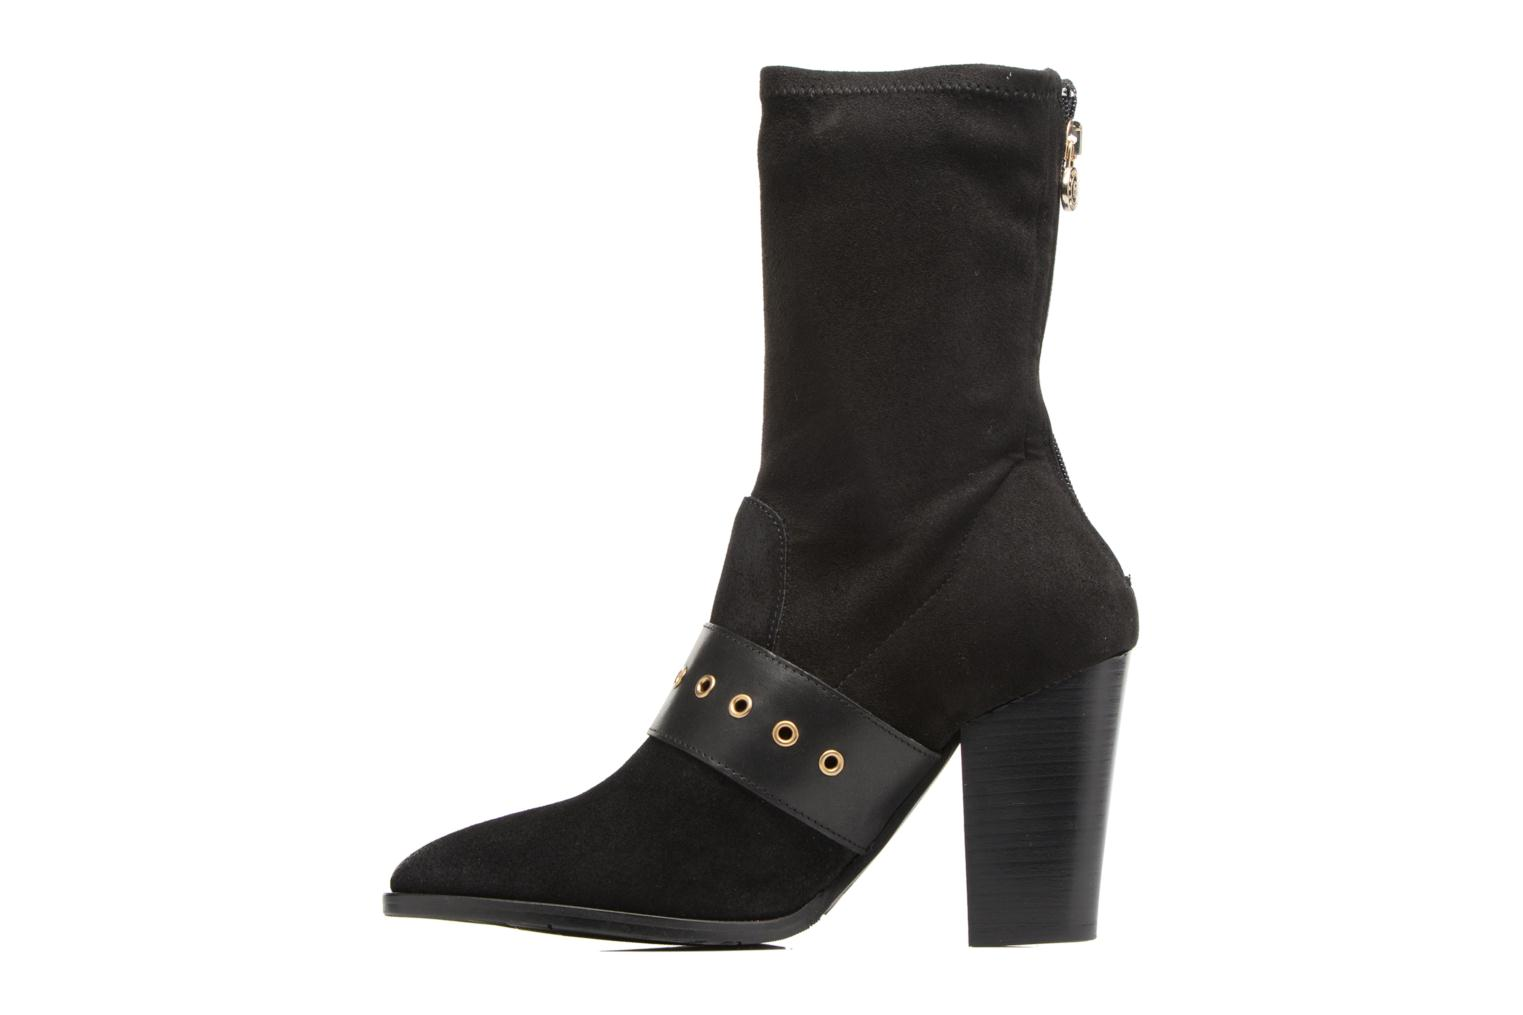 Gigi Hadid Heeled Boot Black